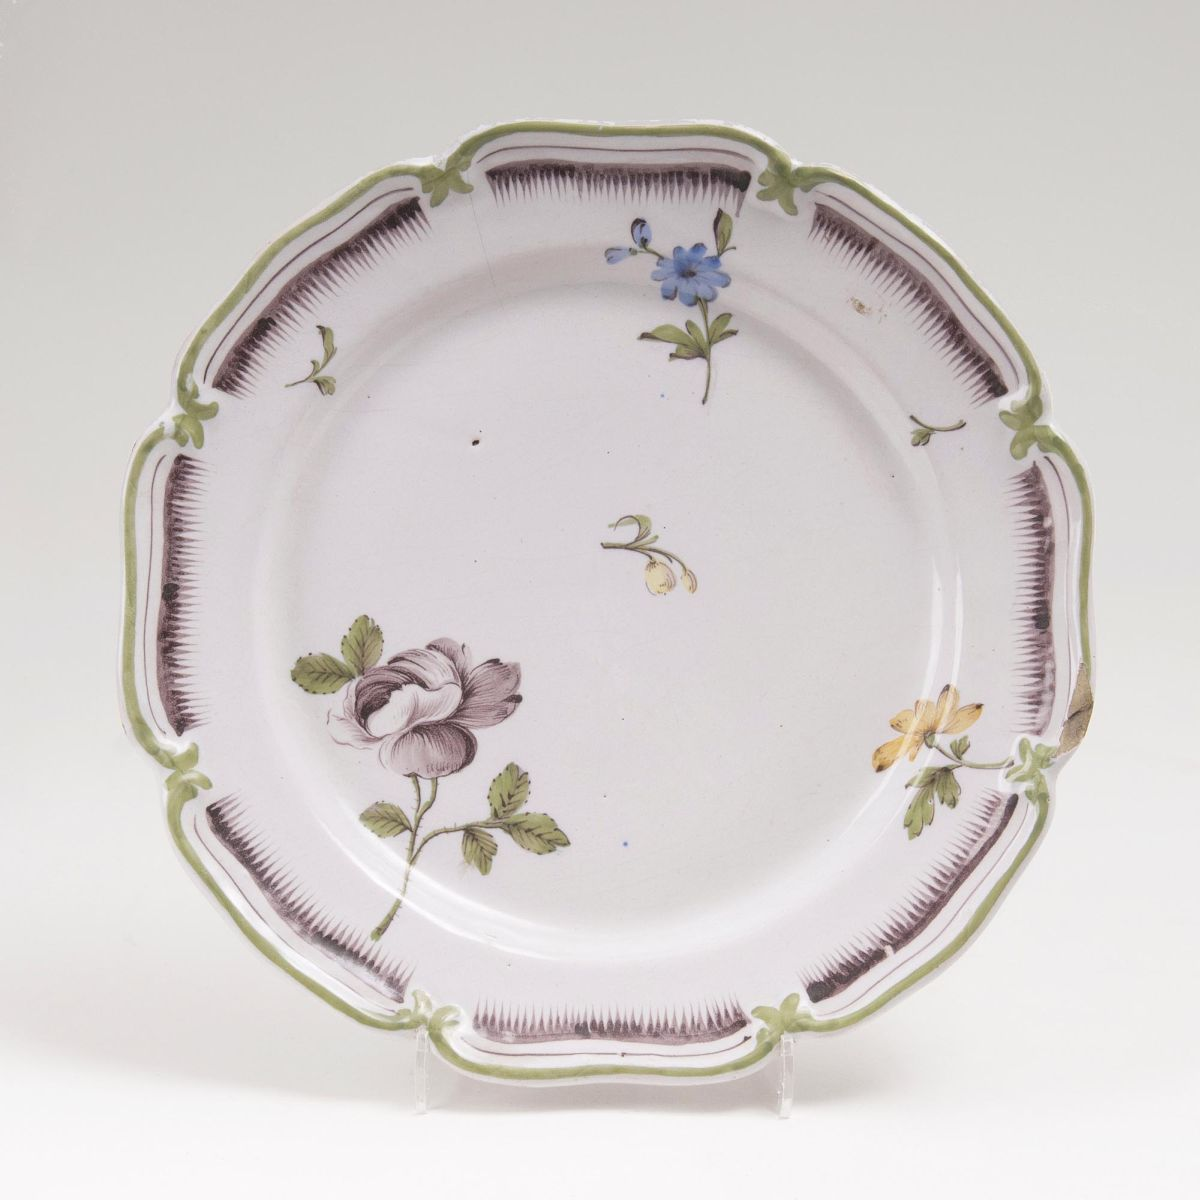 A Faience Plate with Flowers